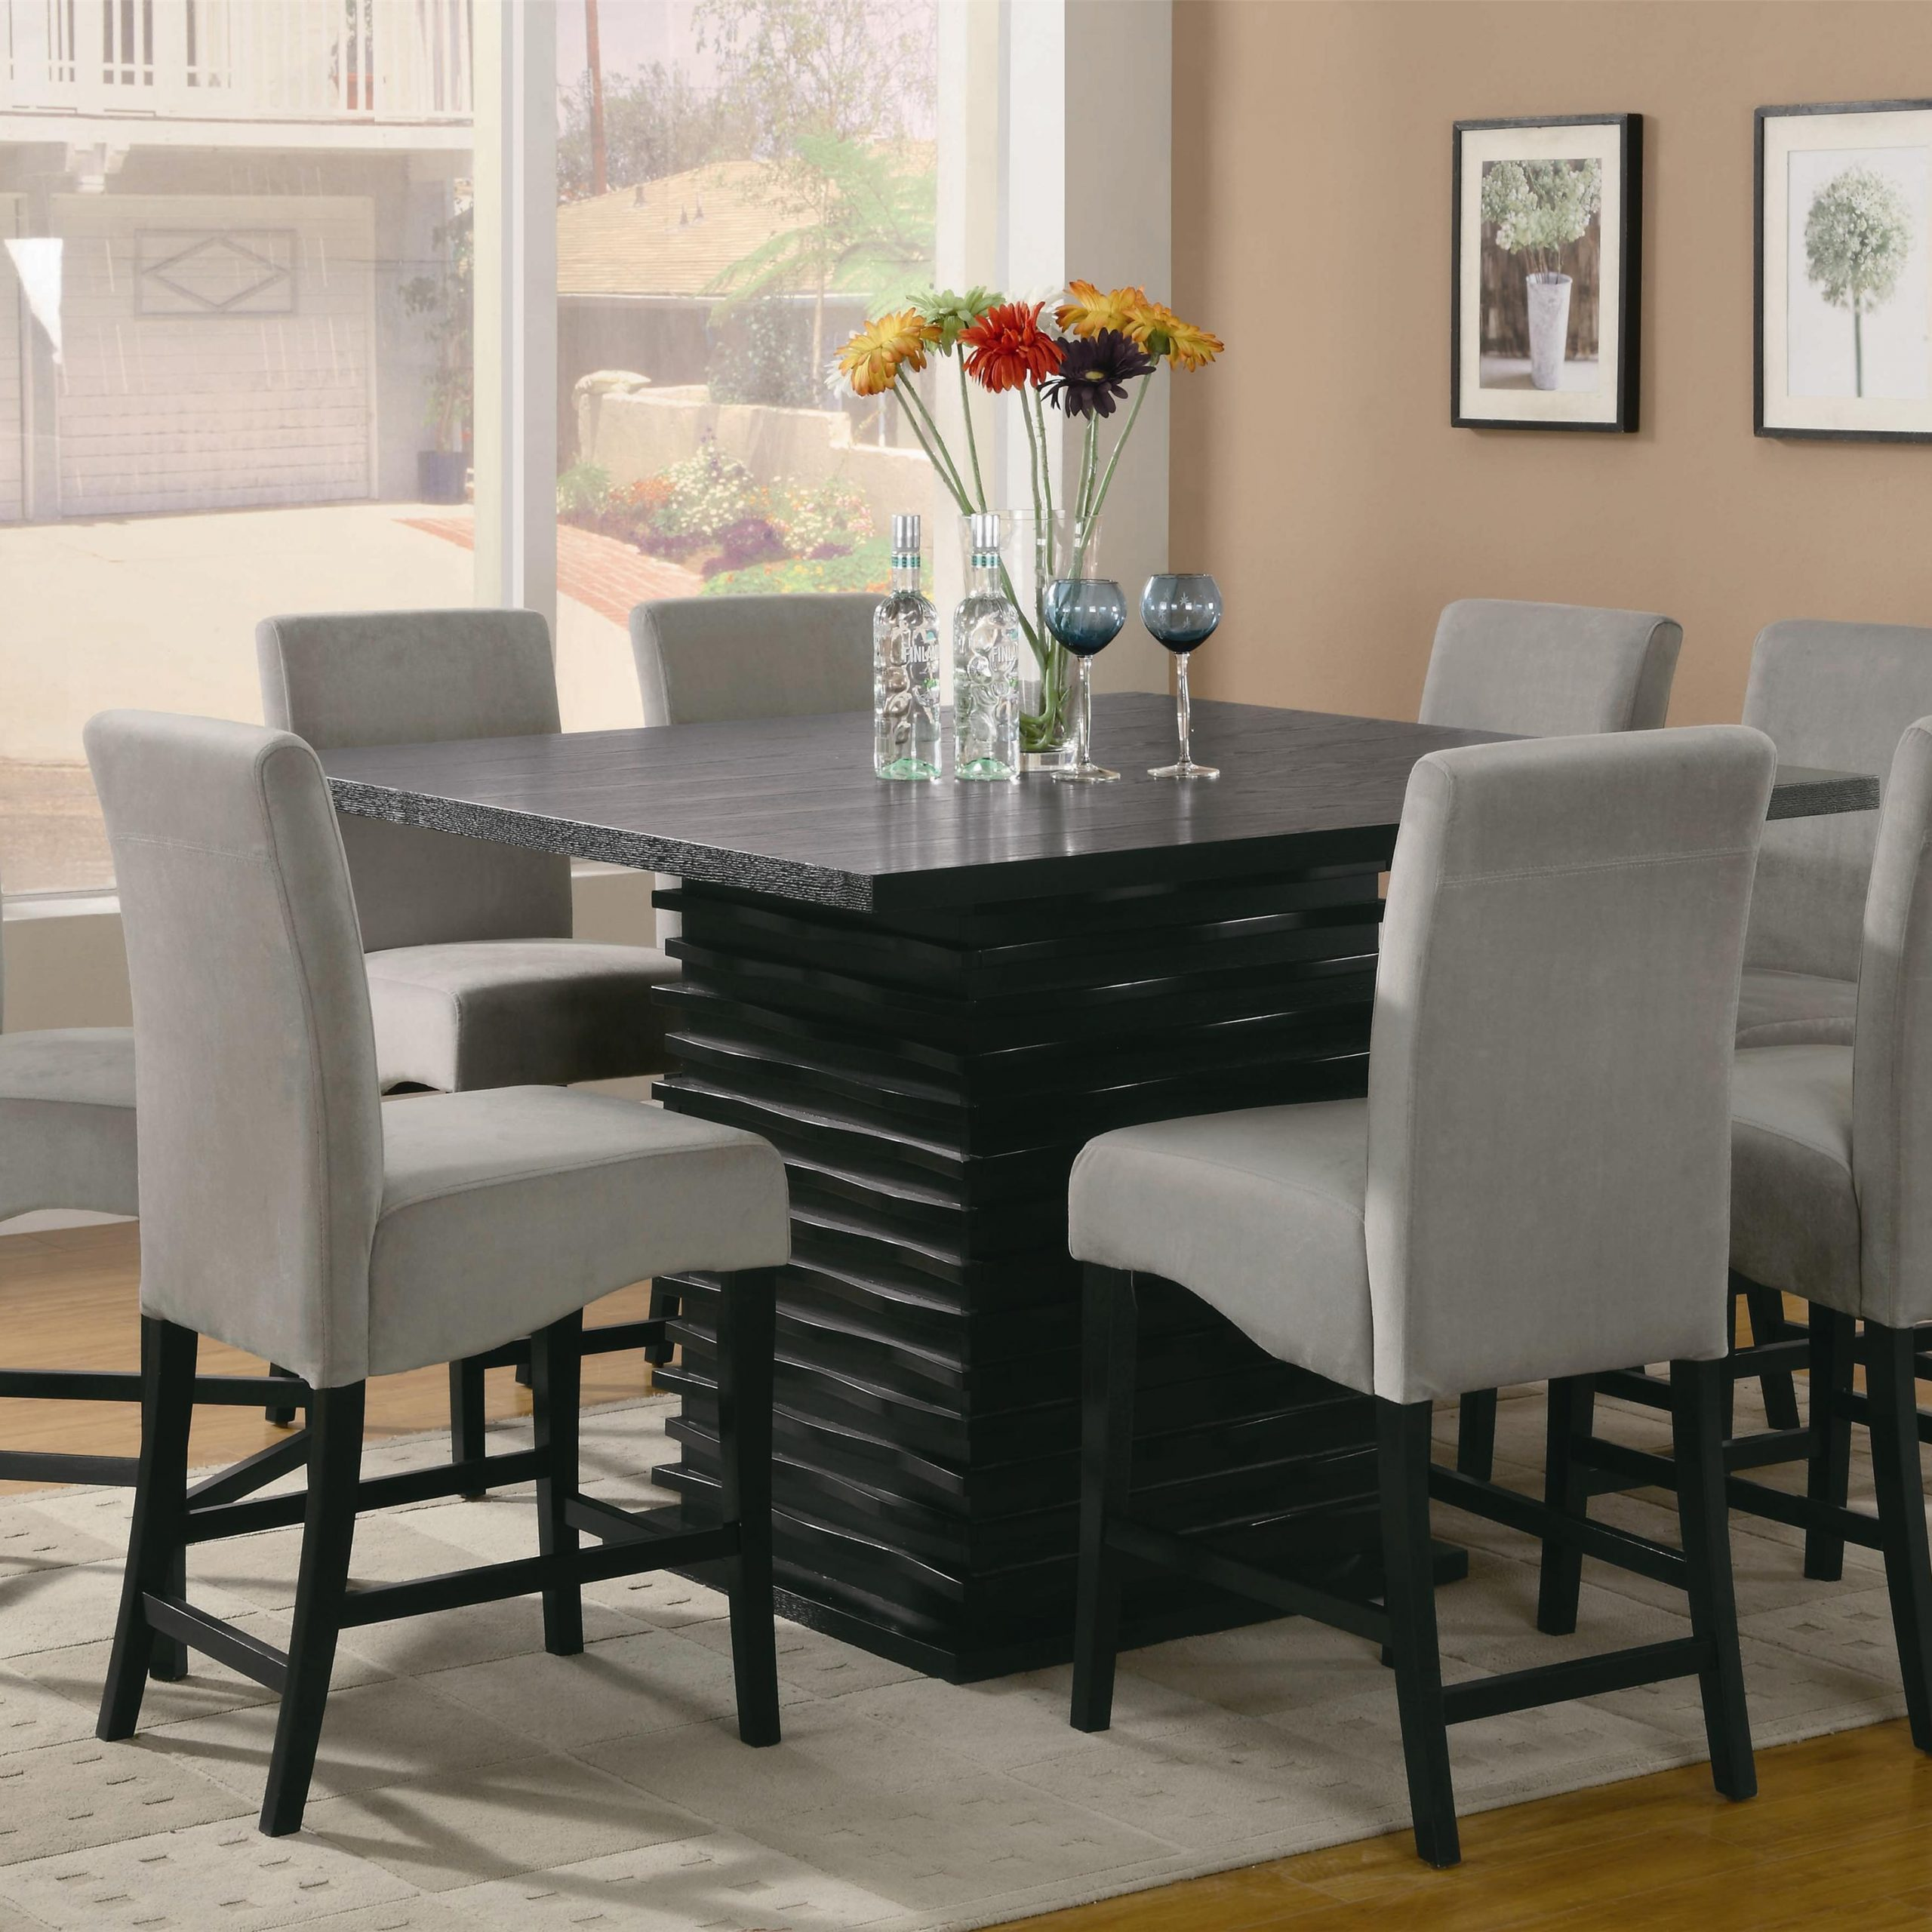 dining set 8 chairs